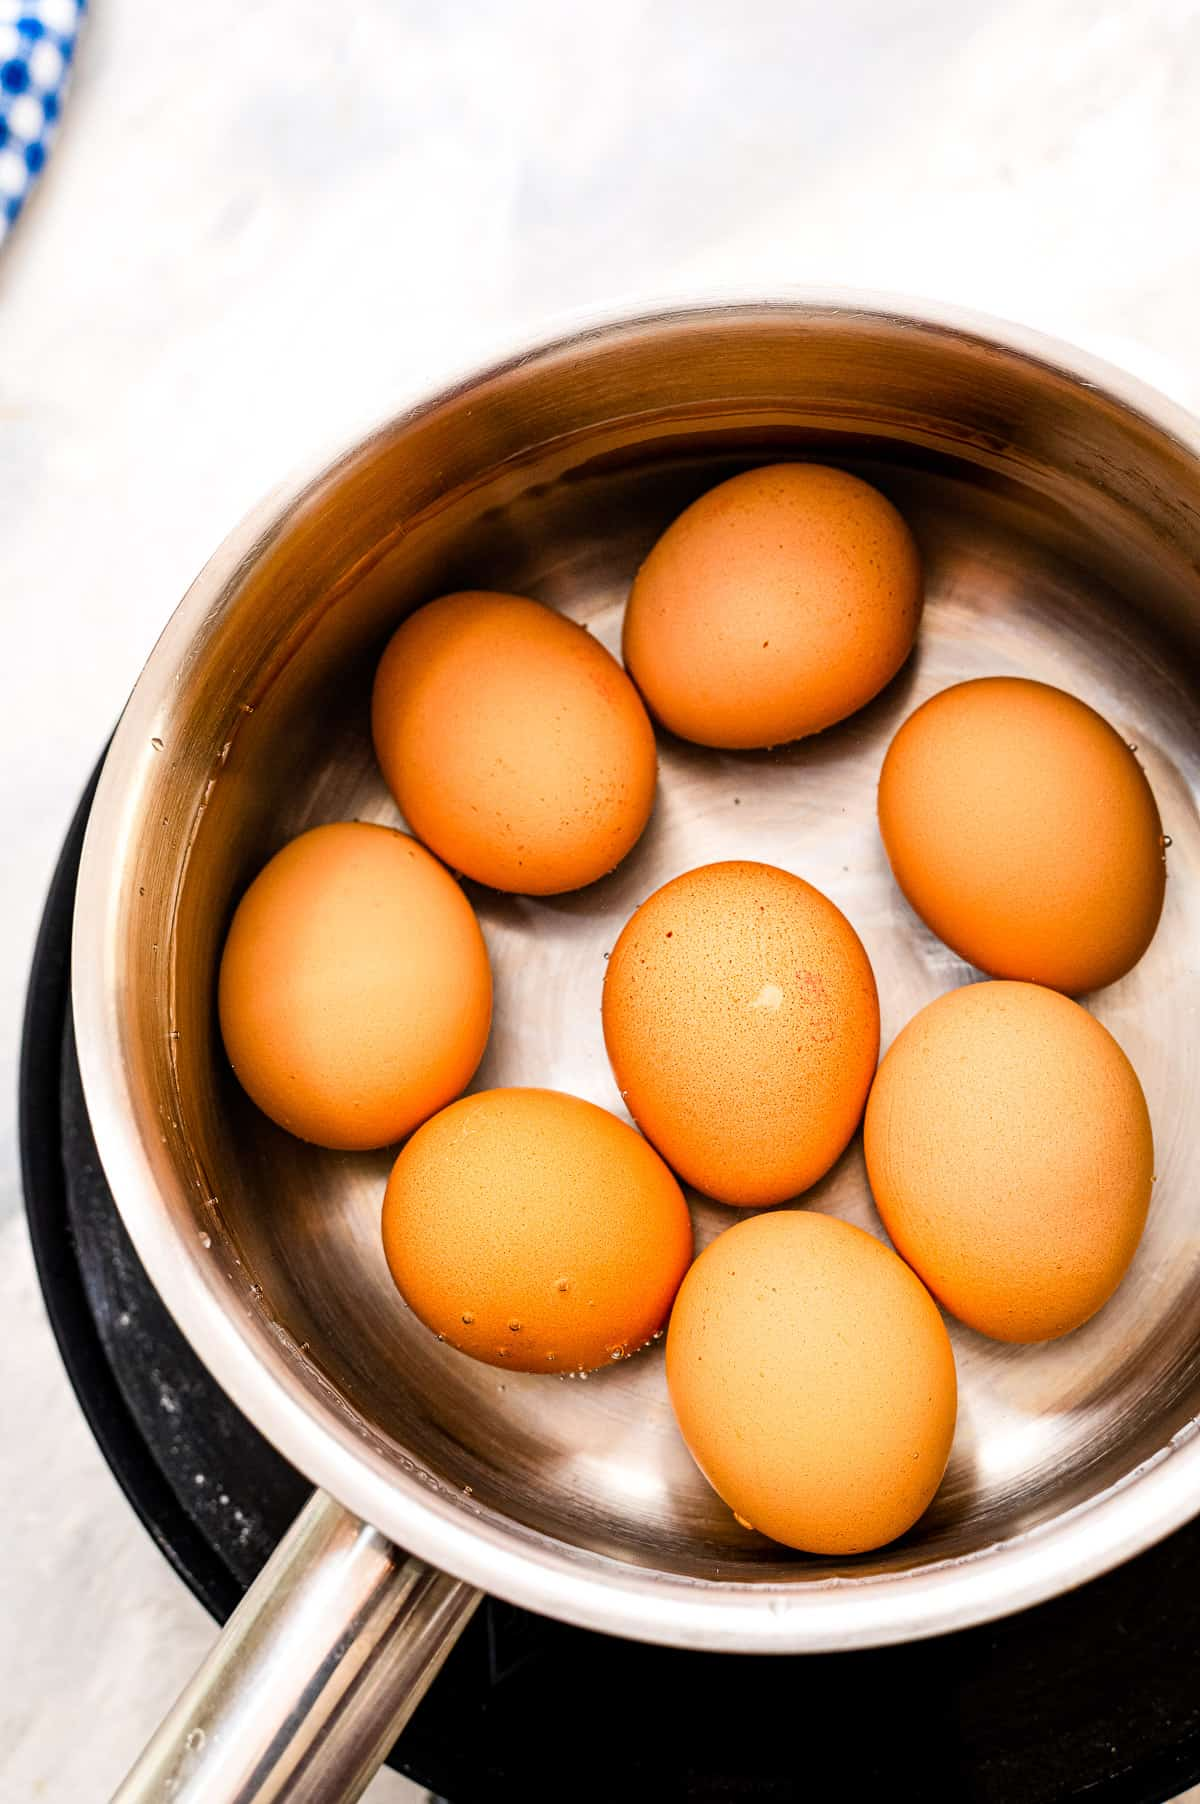 Overhead image with saucepan full of water and brown eggs